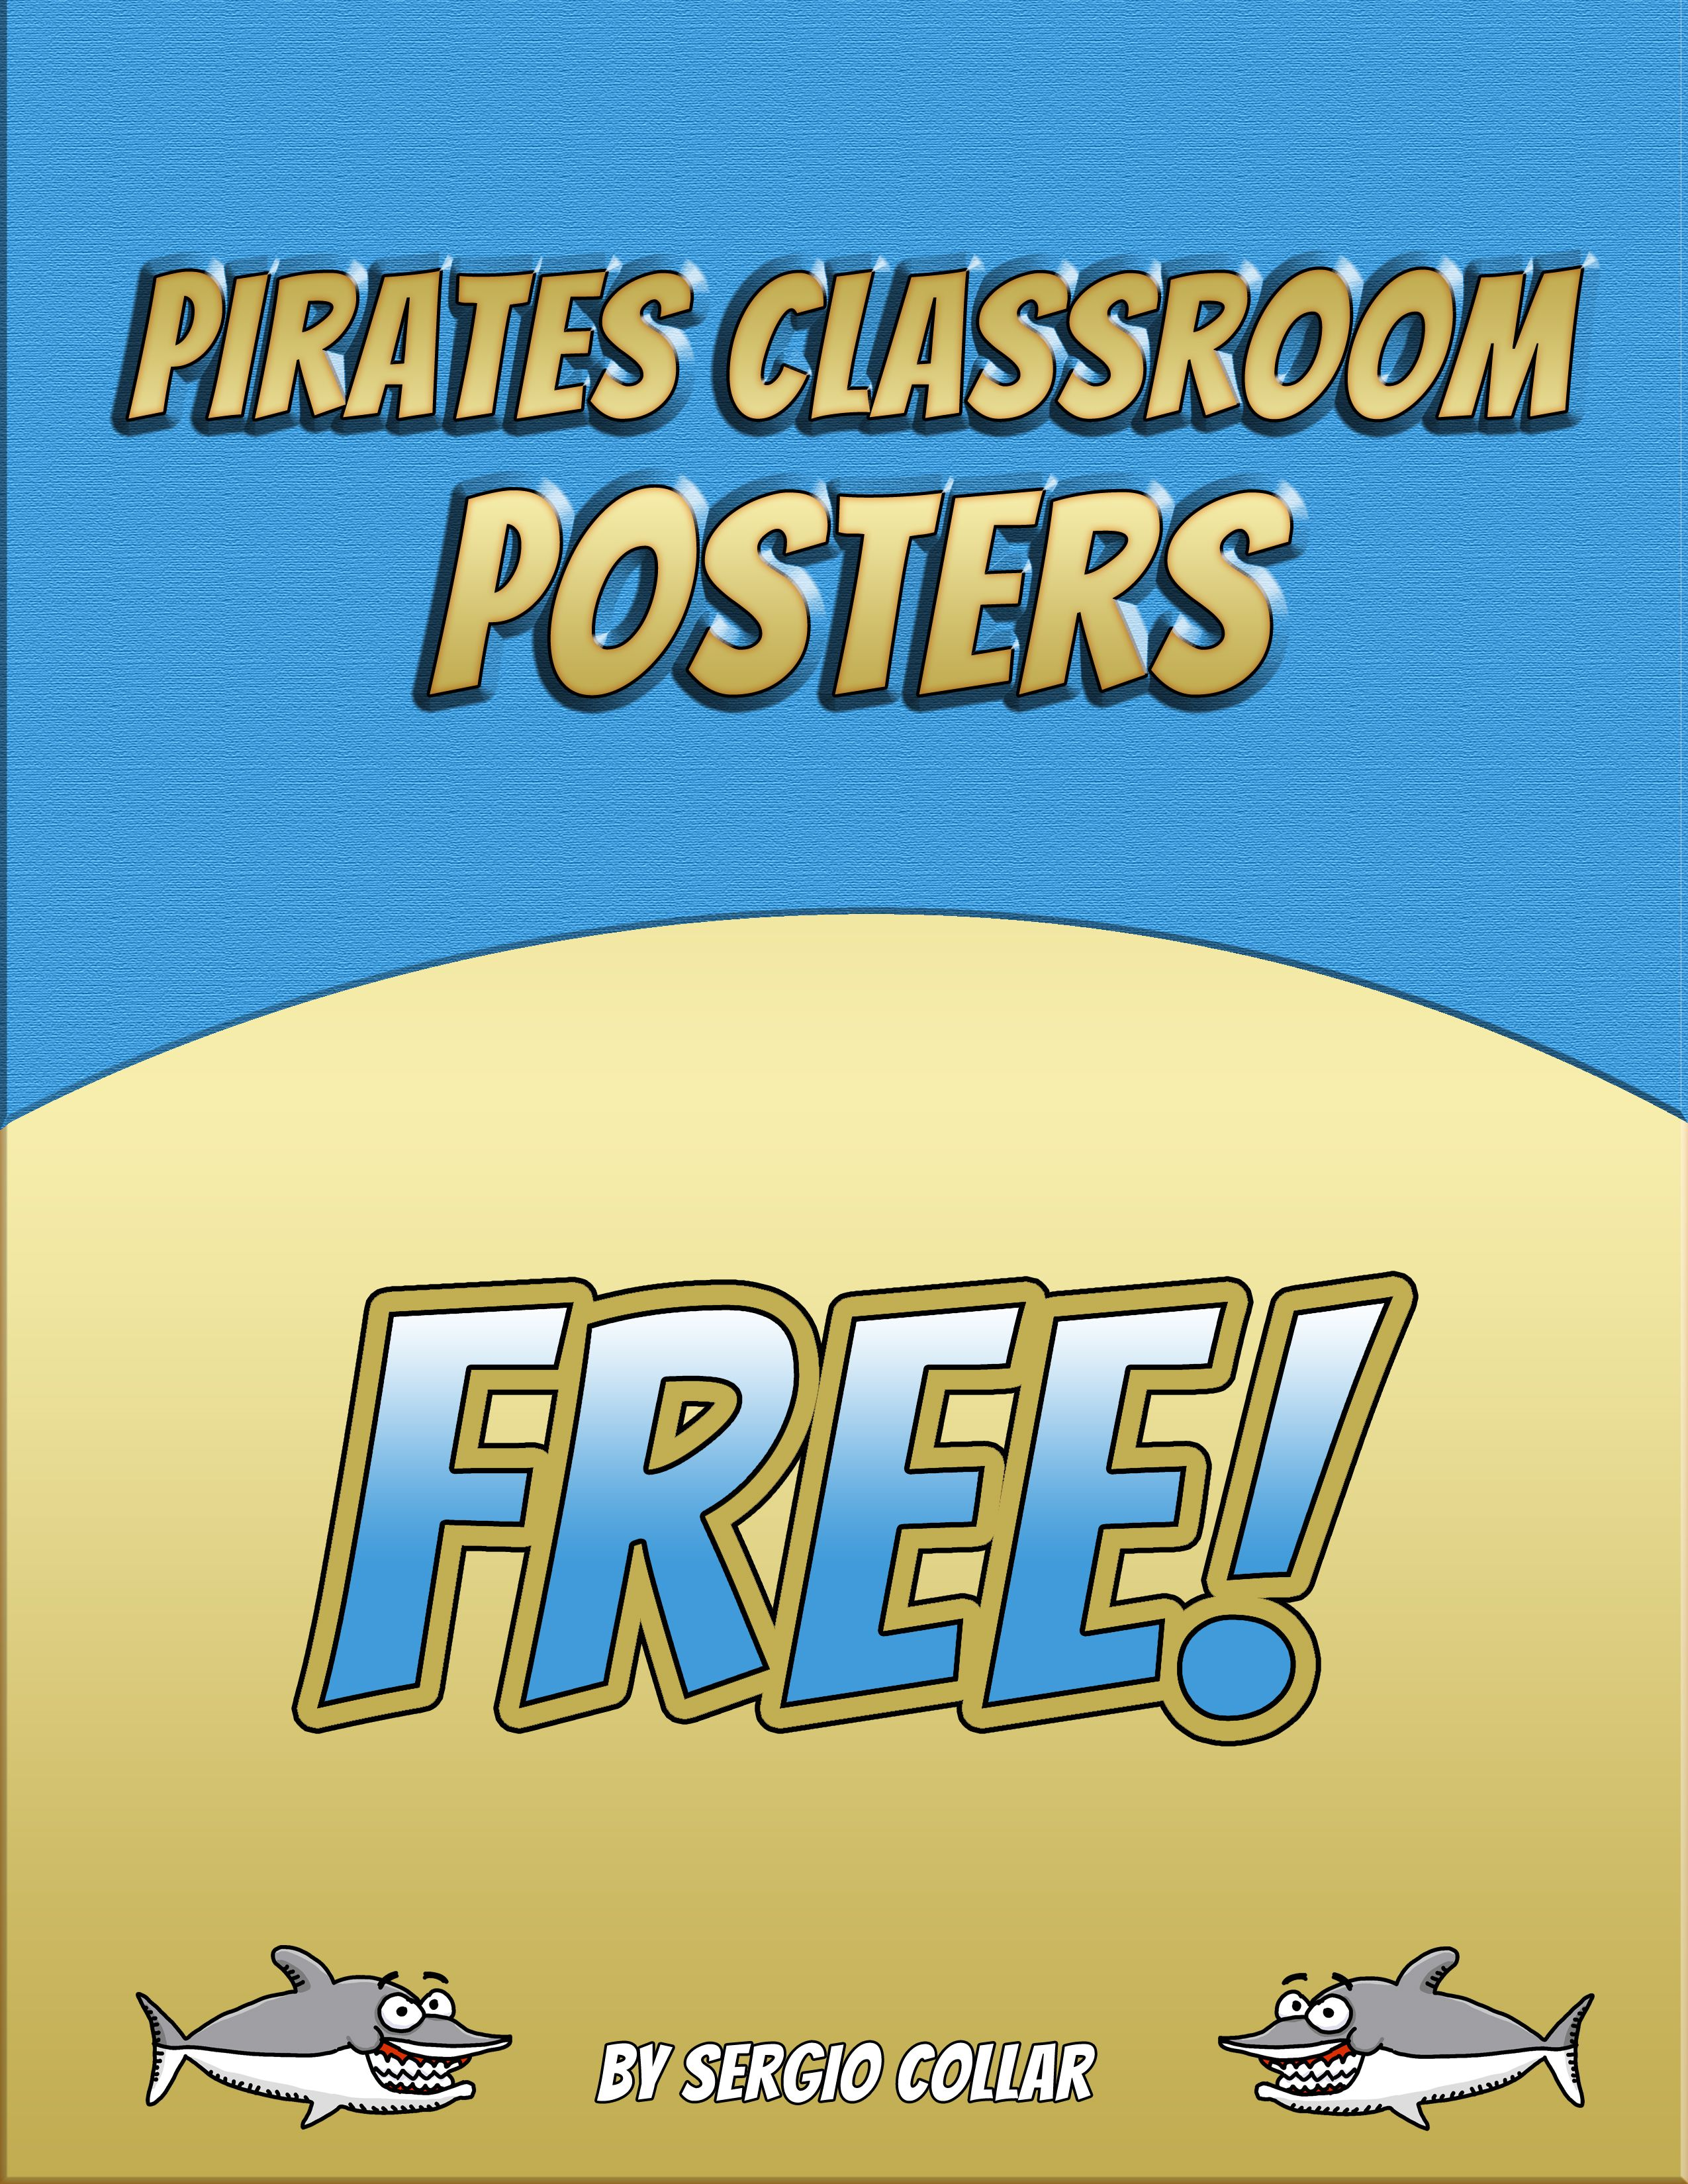 PIRATES CLASSROOM POSTERS FREE 2 Cool Posters For Your Classroom